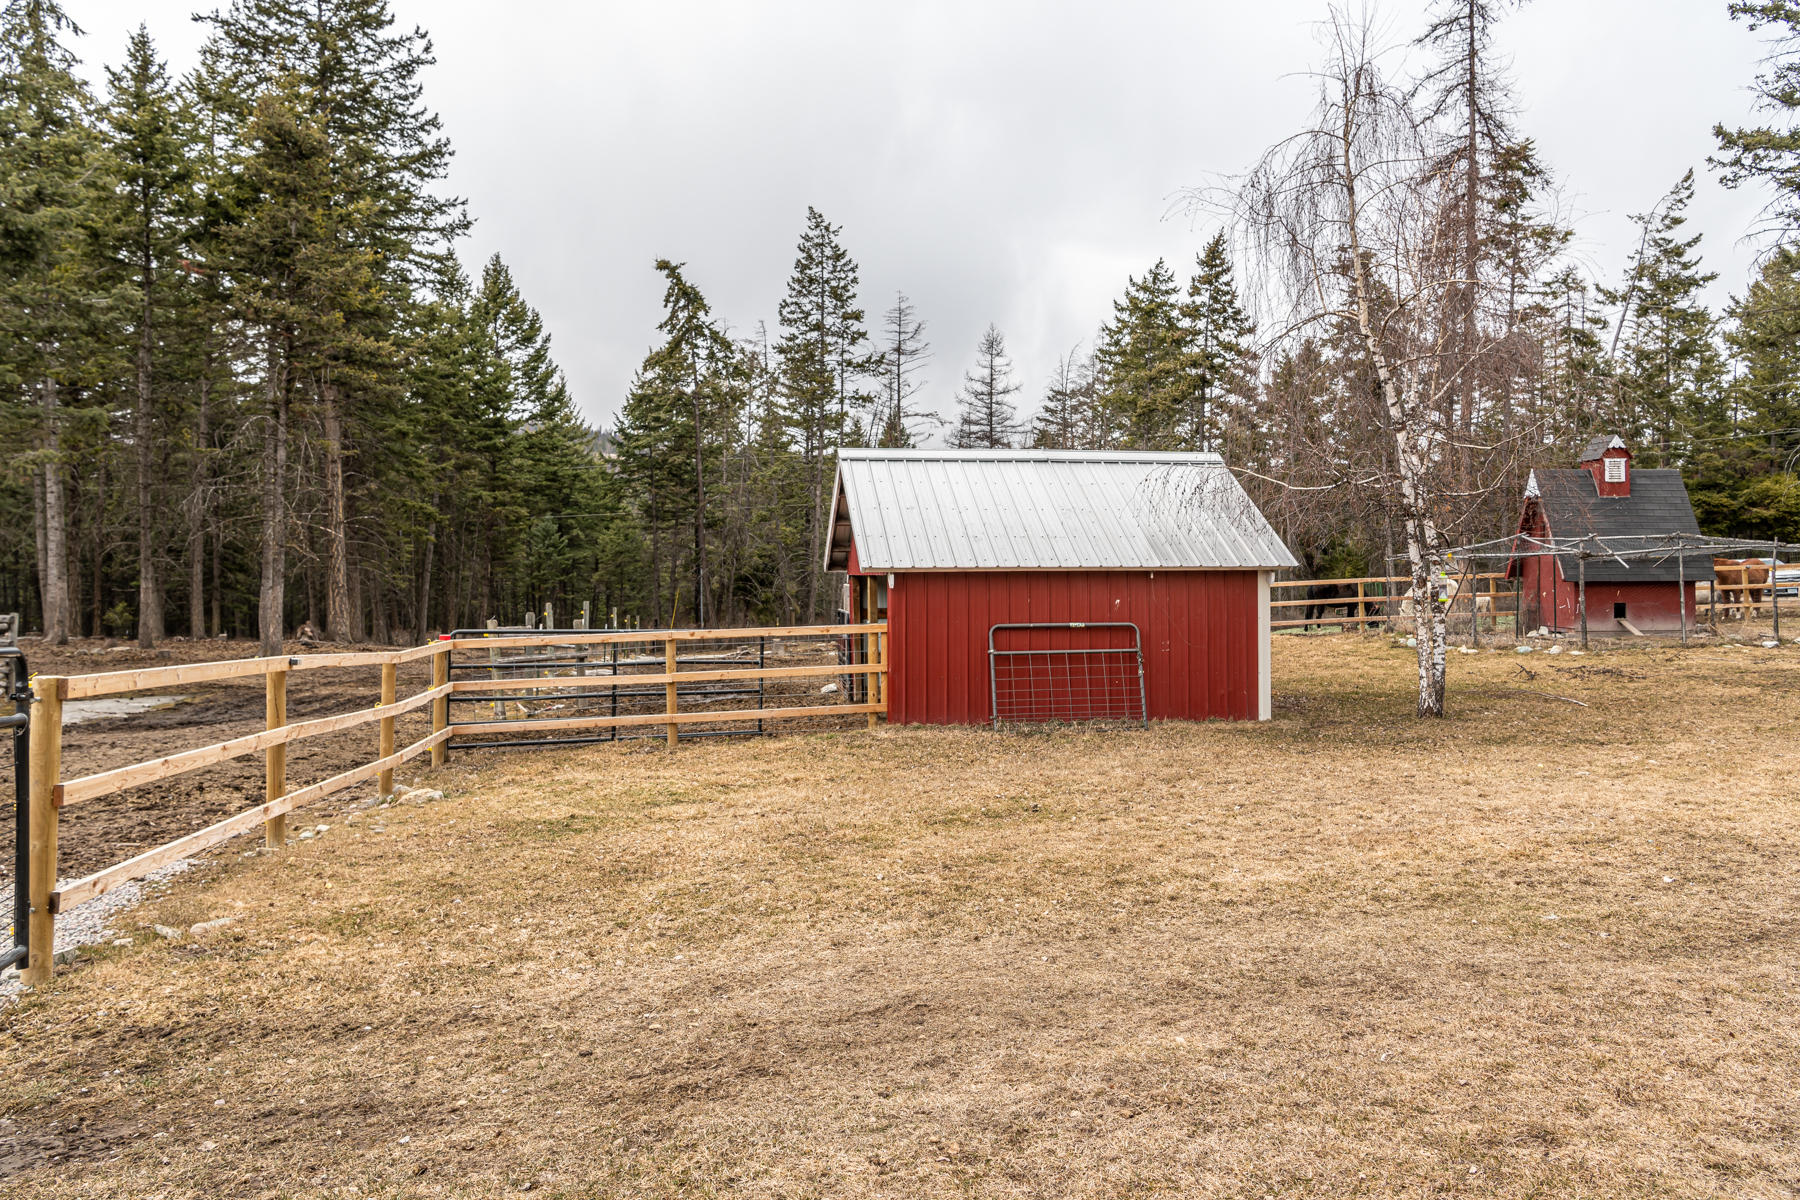 Outbuilding/Animal Pen